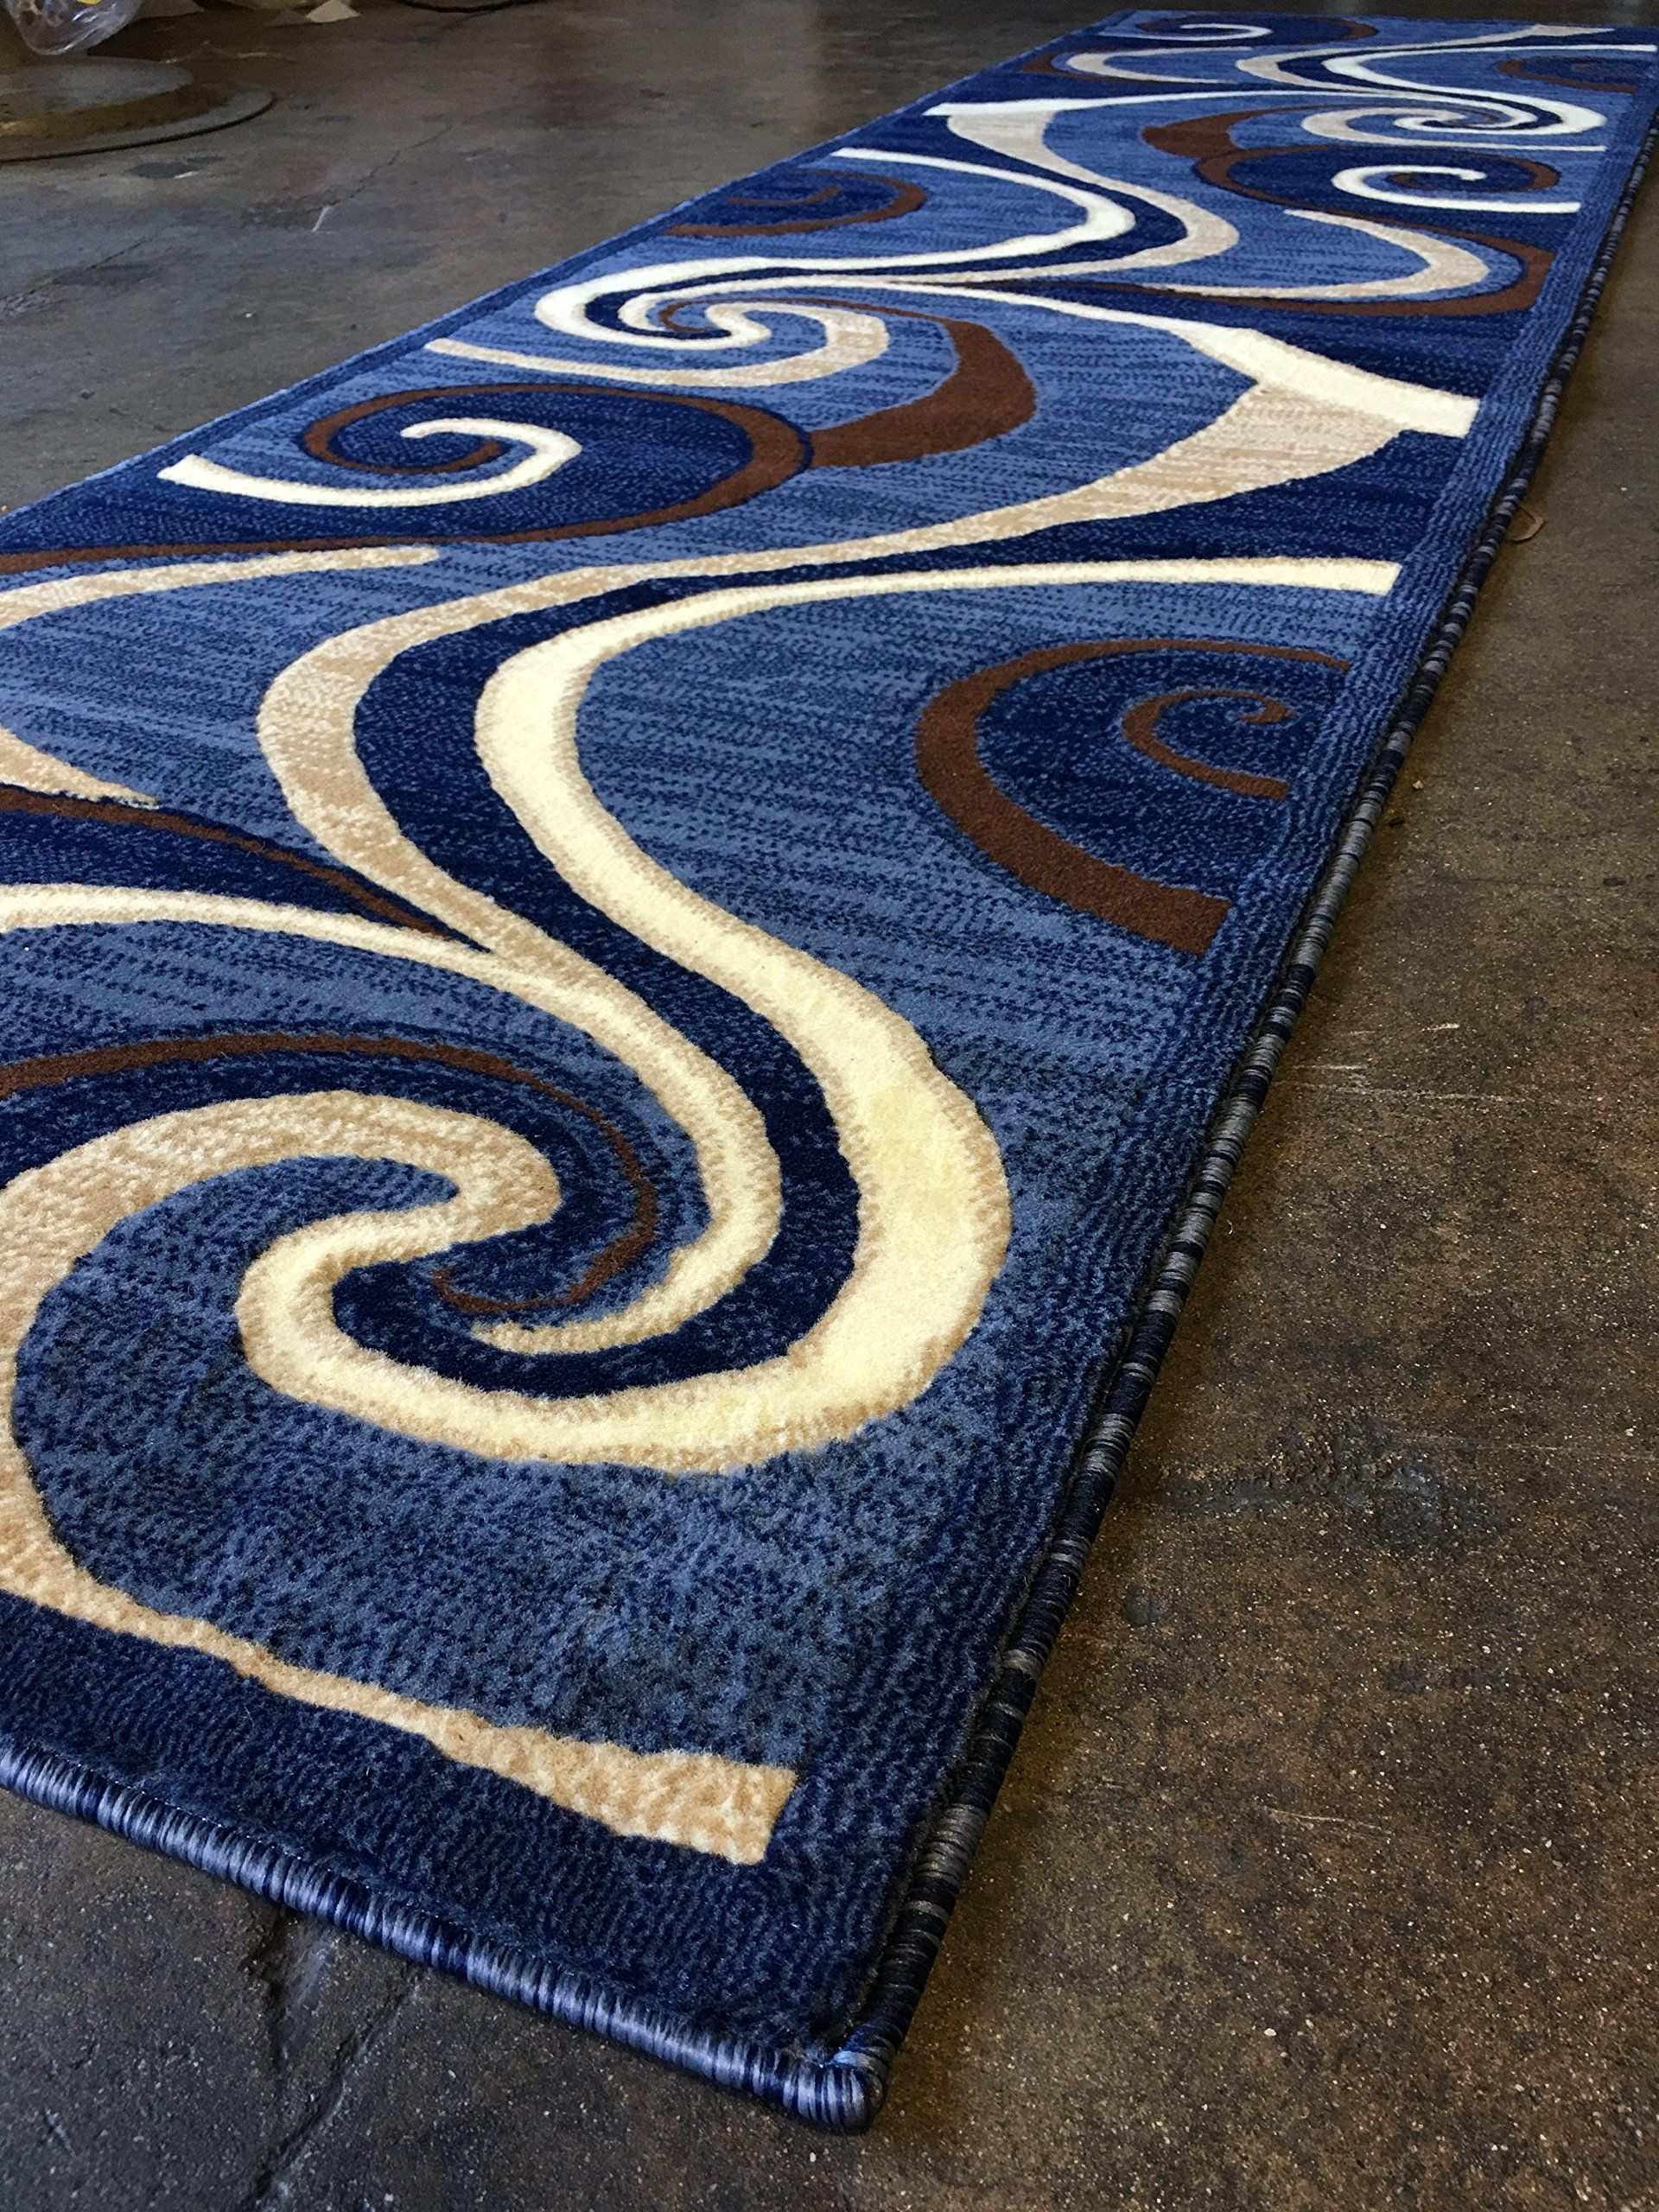 Modern Long Runner Contemporary Rug Blue Brown Beige Abstract Swirl Design 144 32 Inch X 10 Feet More Info Could Contemporary Rug Swirl Design Brown Beige